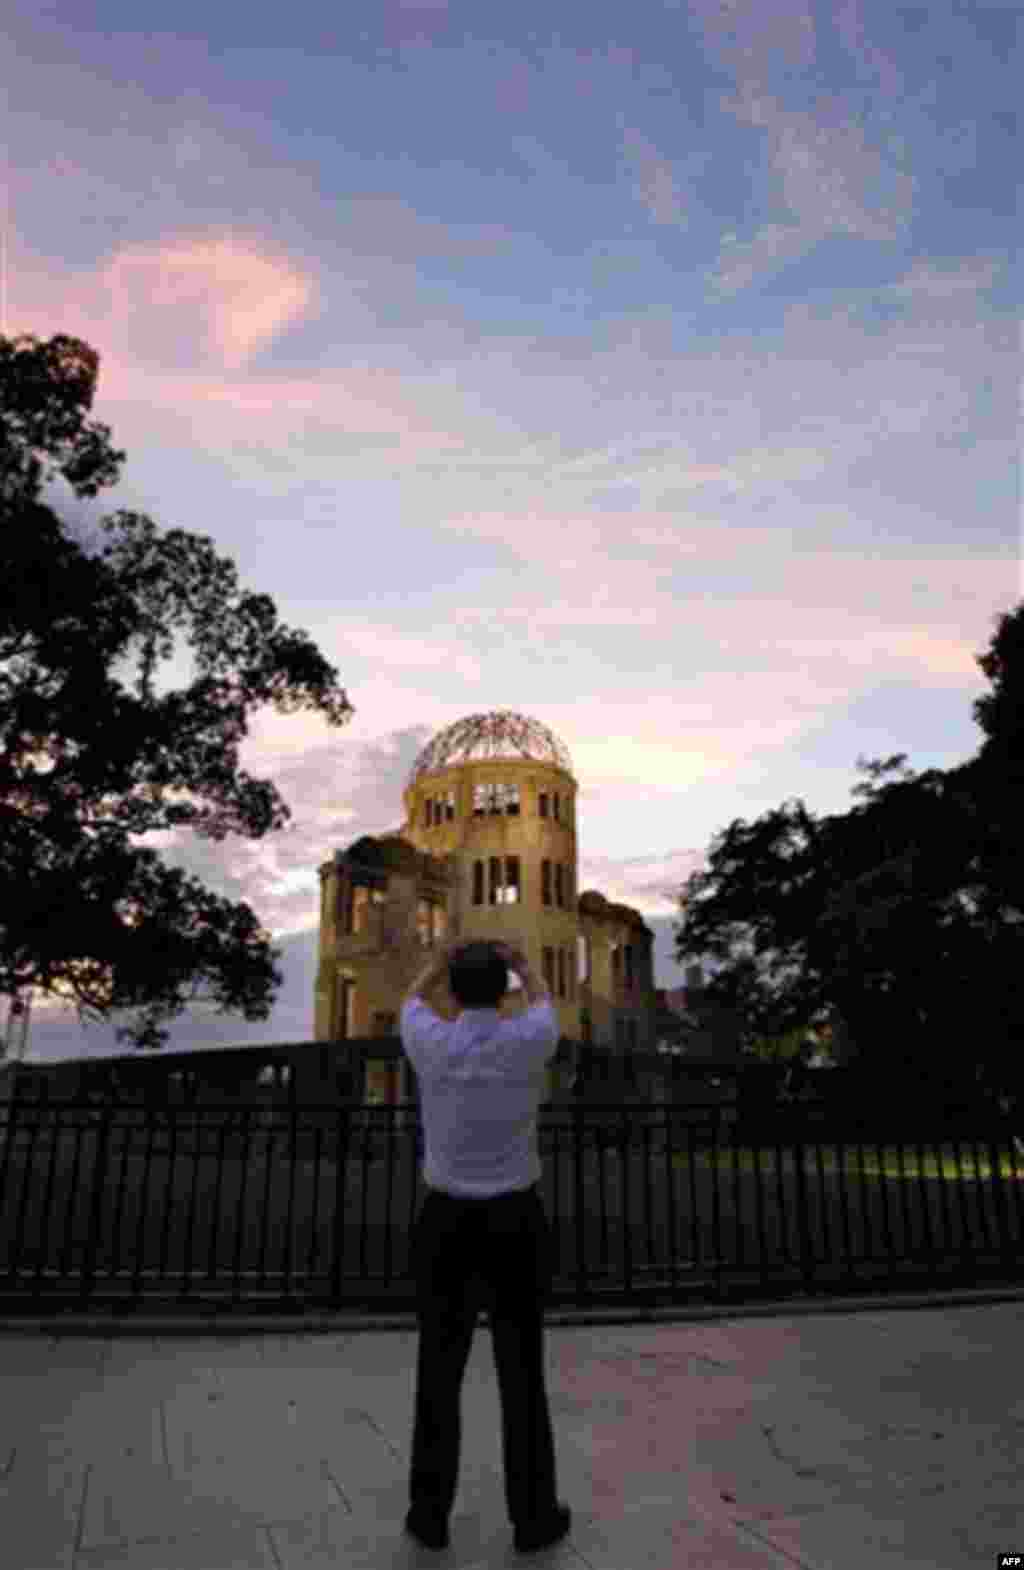 A man takes pictures of the Atomic Bomb Dome at sunset in Hiroshima, western Japan, Friday, Aug. 5, 2011 on the eve of the 66th anniversary of the world's first atomic bombing on the city. (AP Photo/Koji Sasahara)